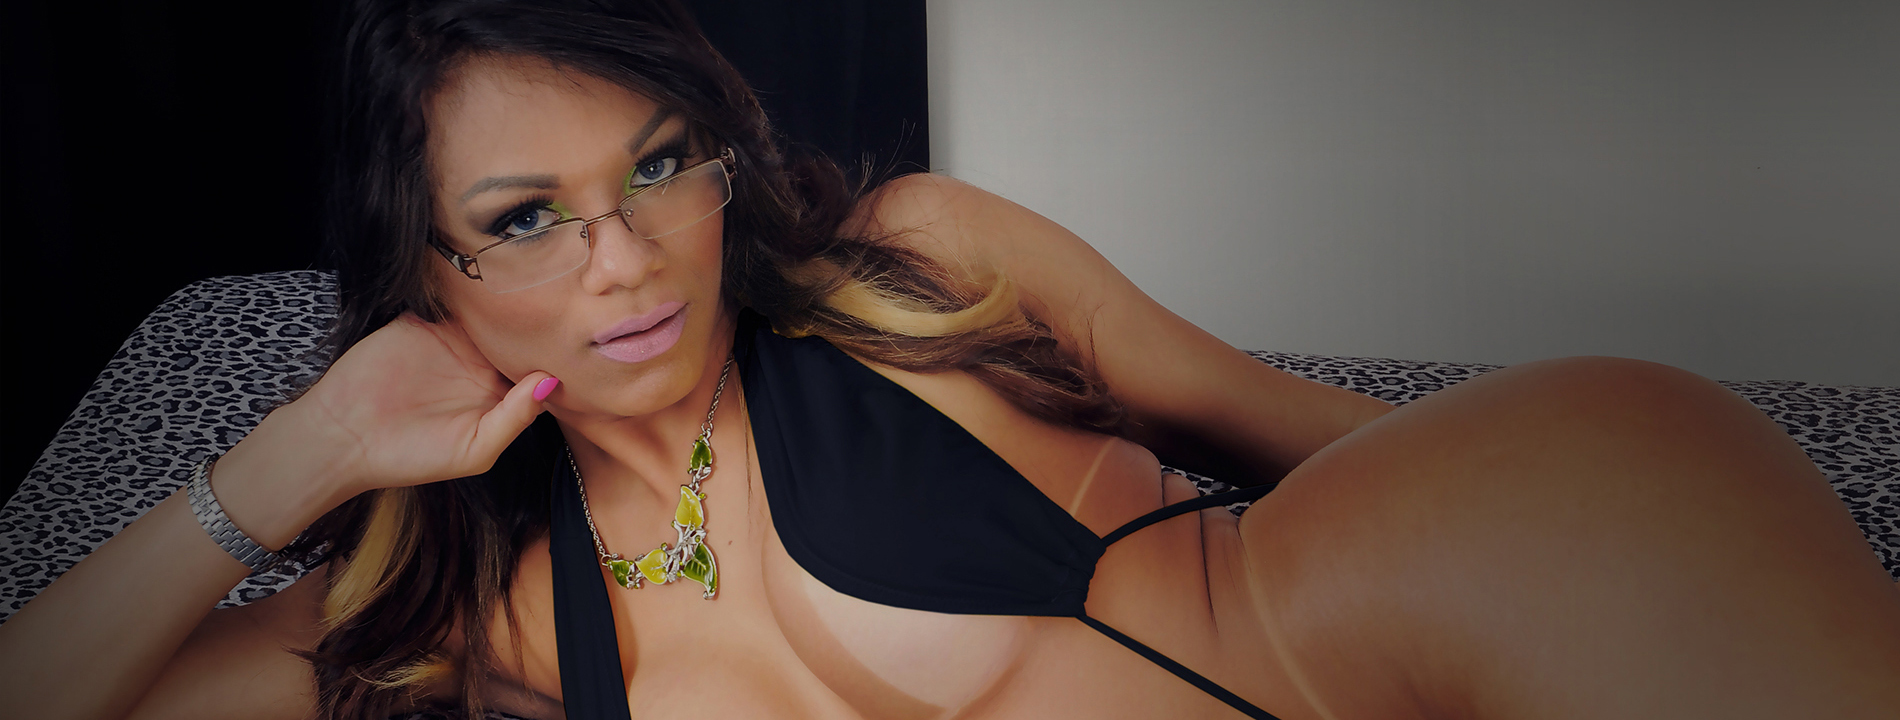 Transsexual chat slovakia